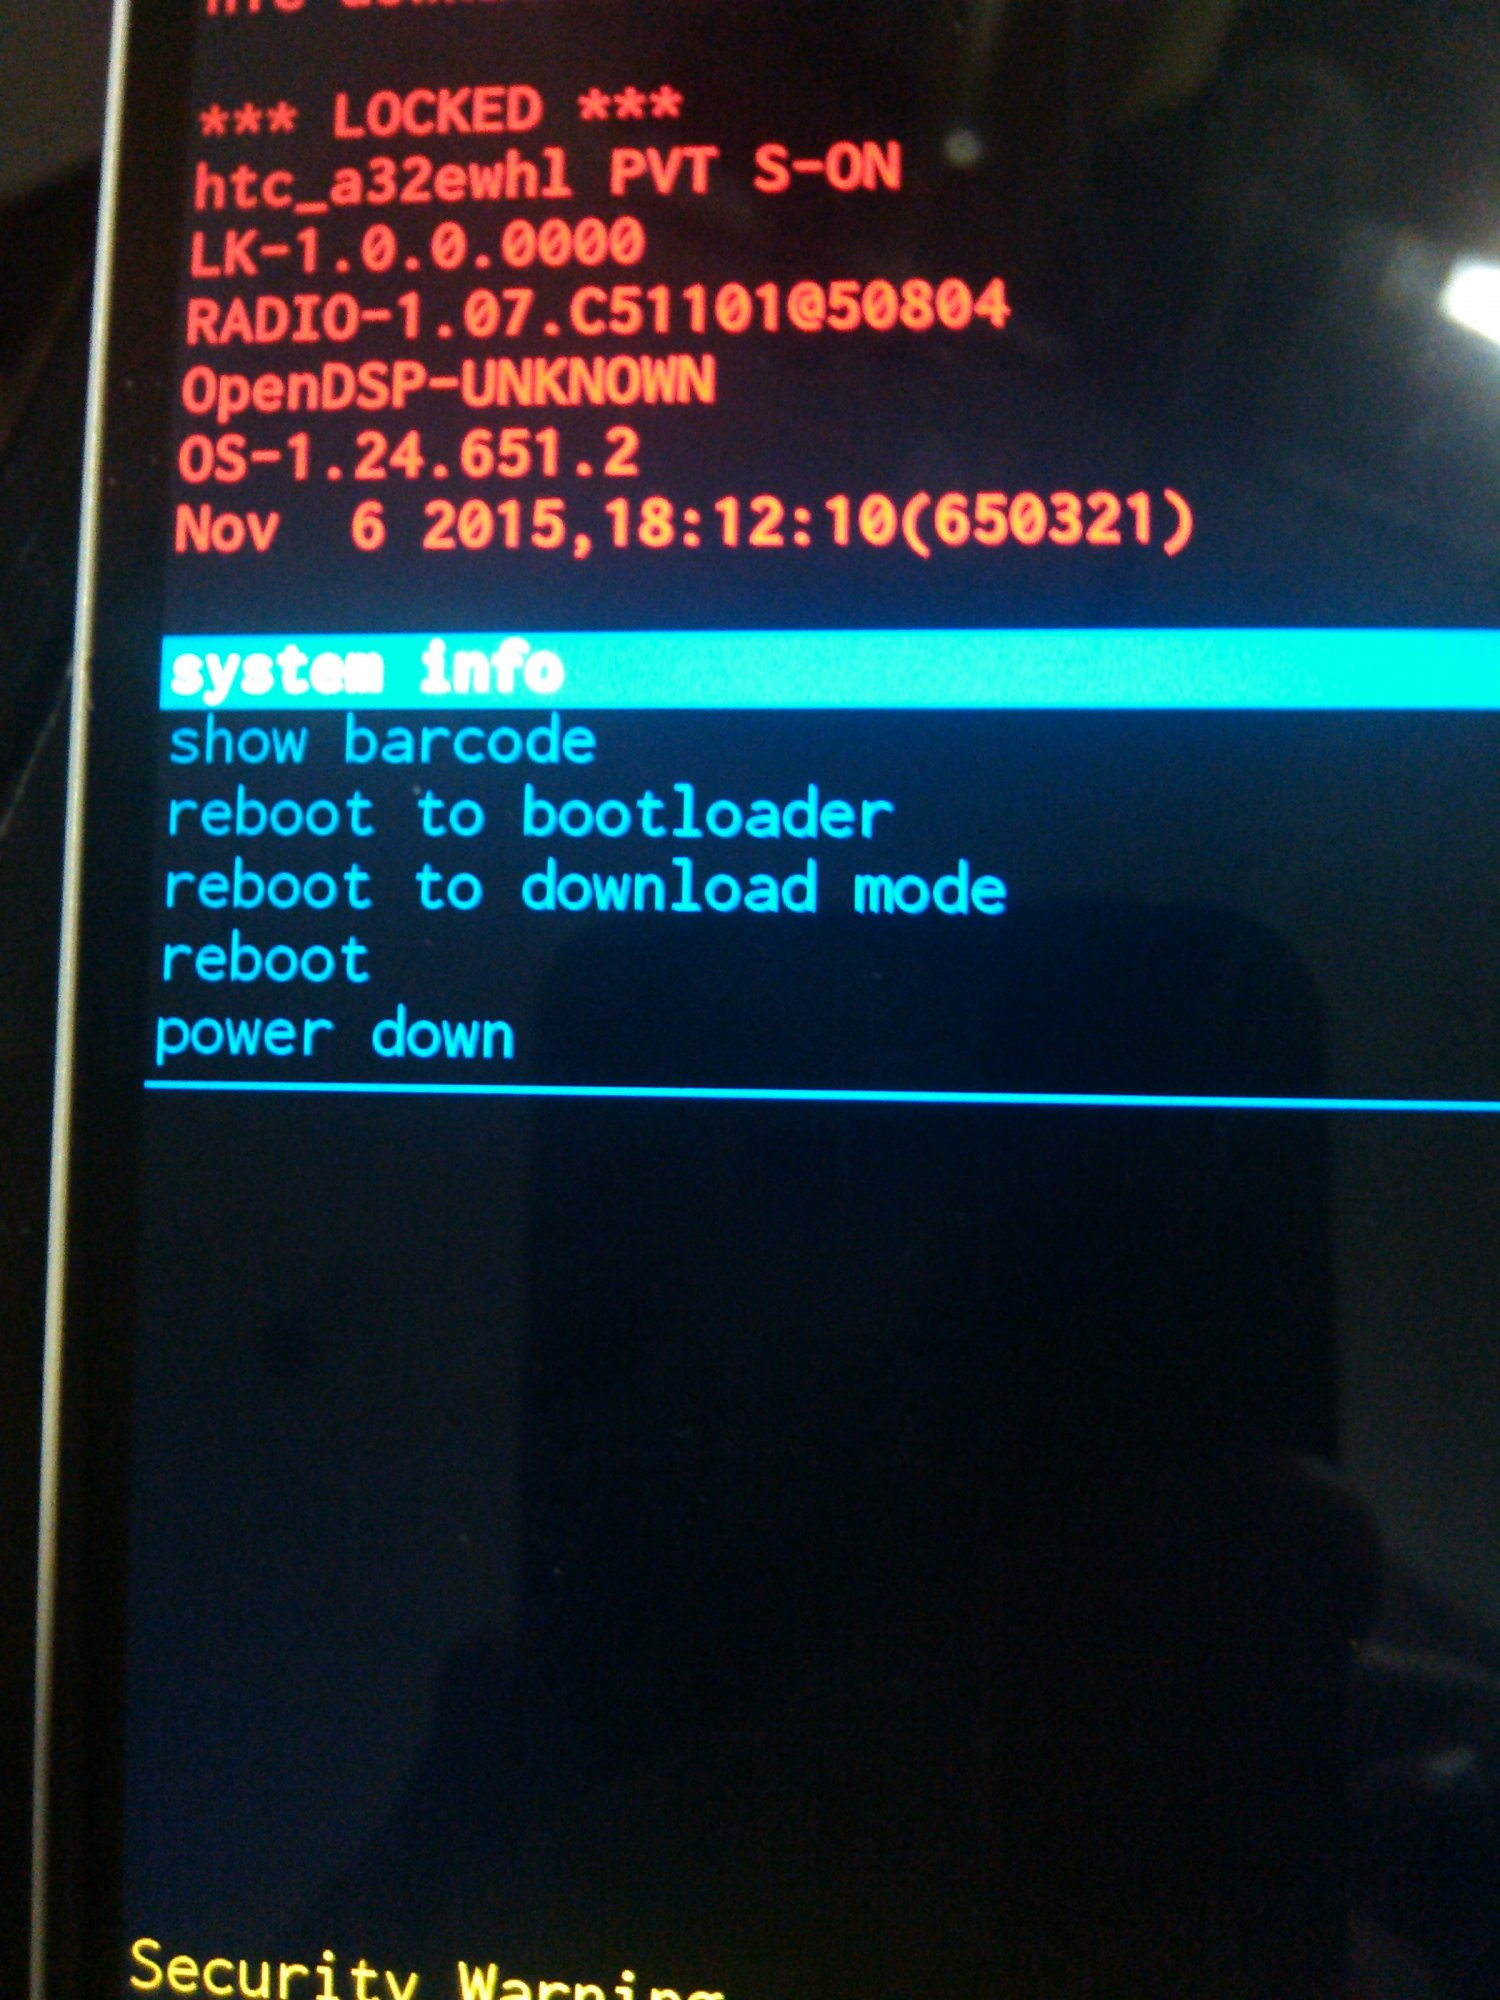 I need some help unlocking the bootloader for my HTC - Android